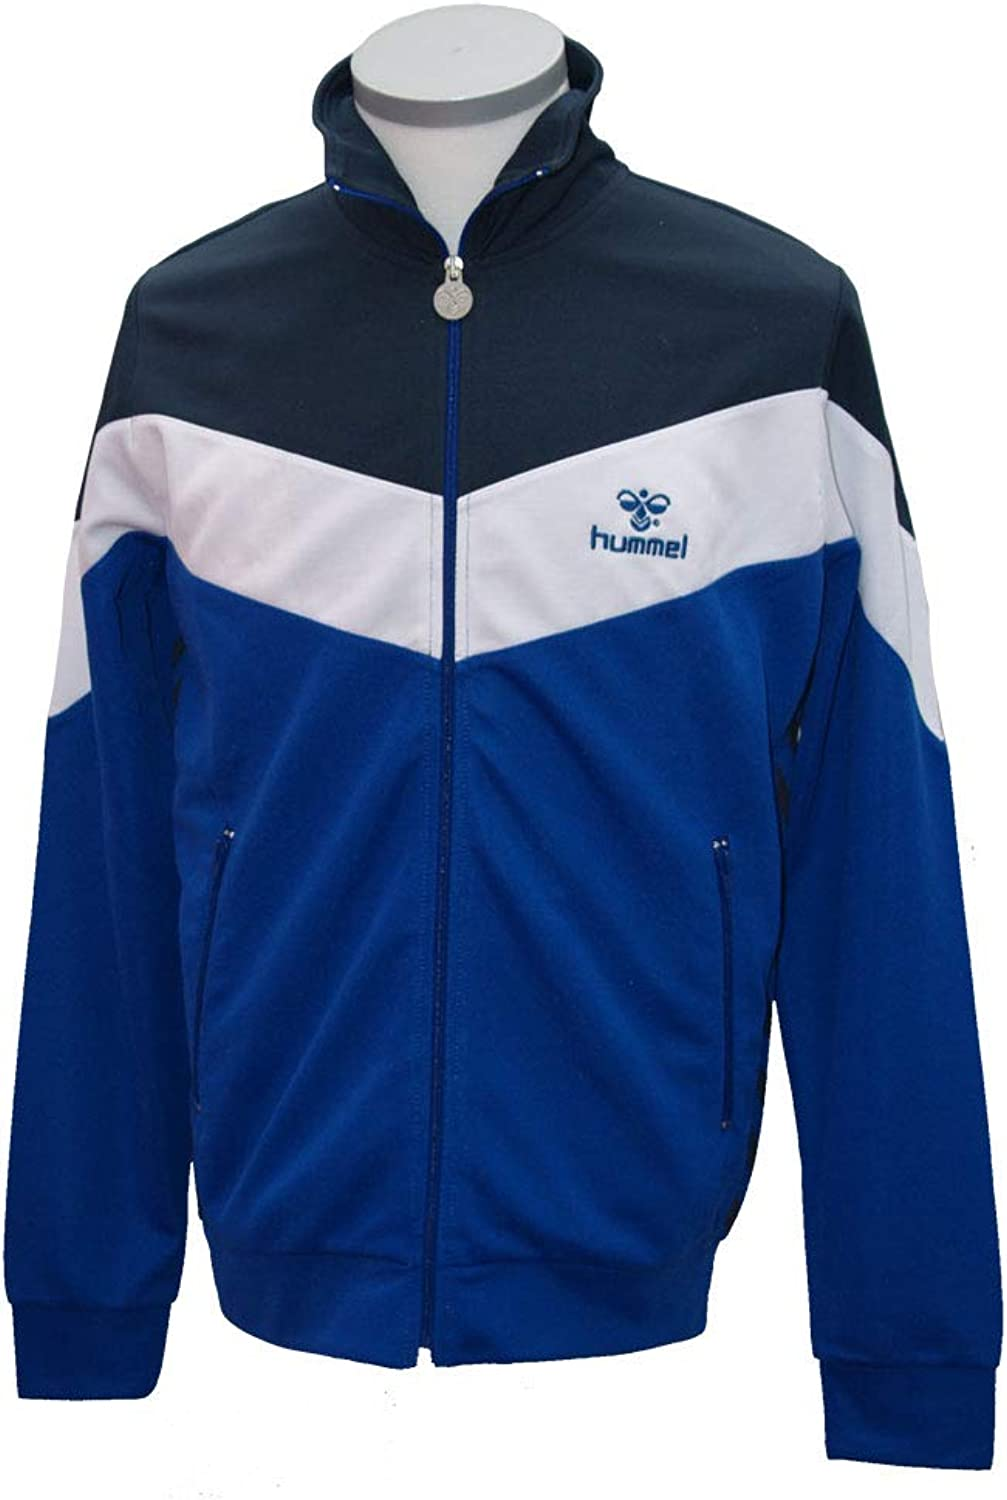 Hummel Miner Zip Jacket, Navy royal Weiß, Gre M